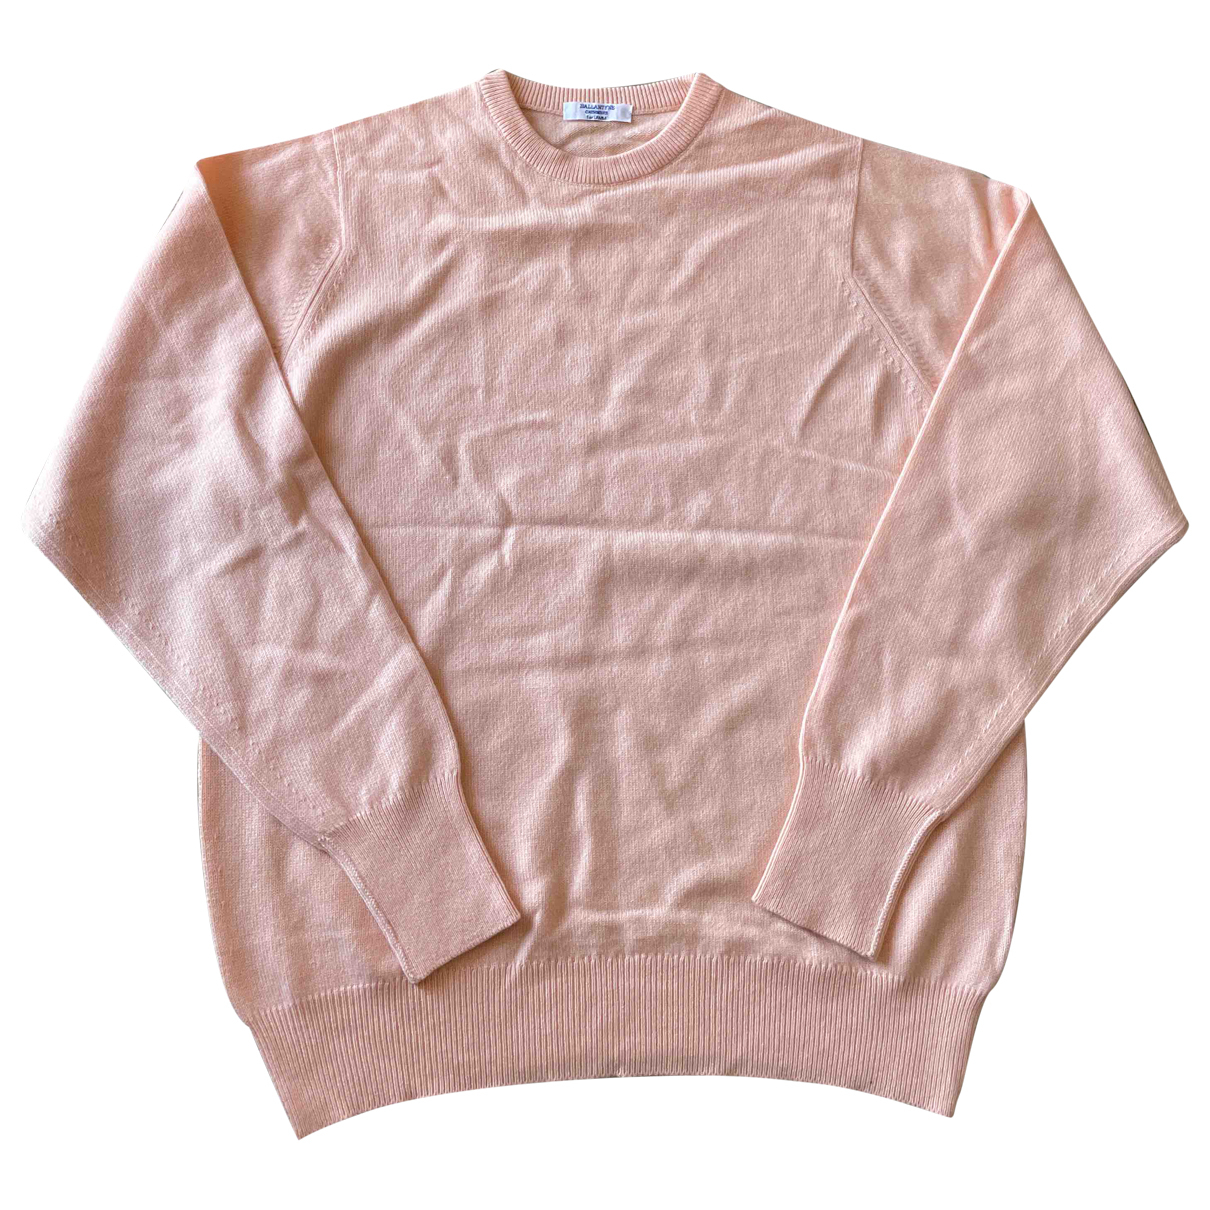 Ballantyne N Pink Cashmere Knitwear & Sweatshirts for Men XL International